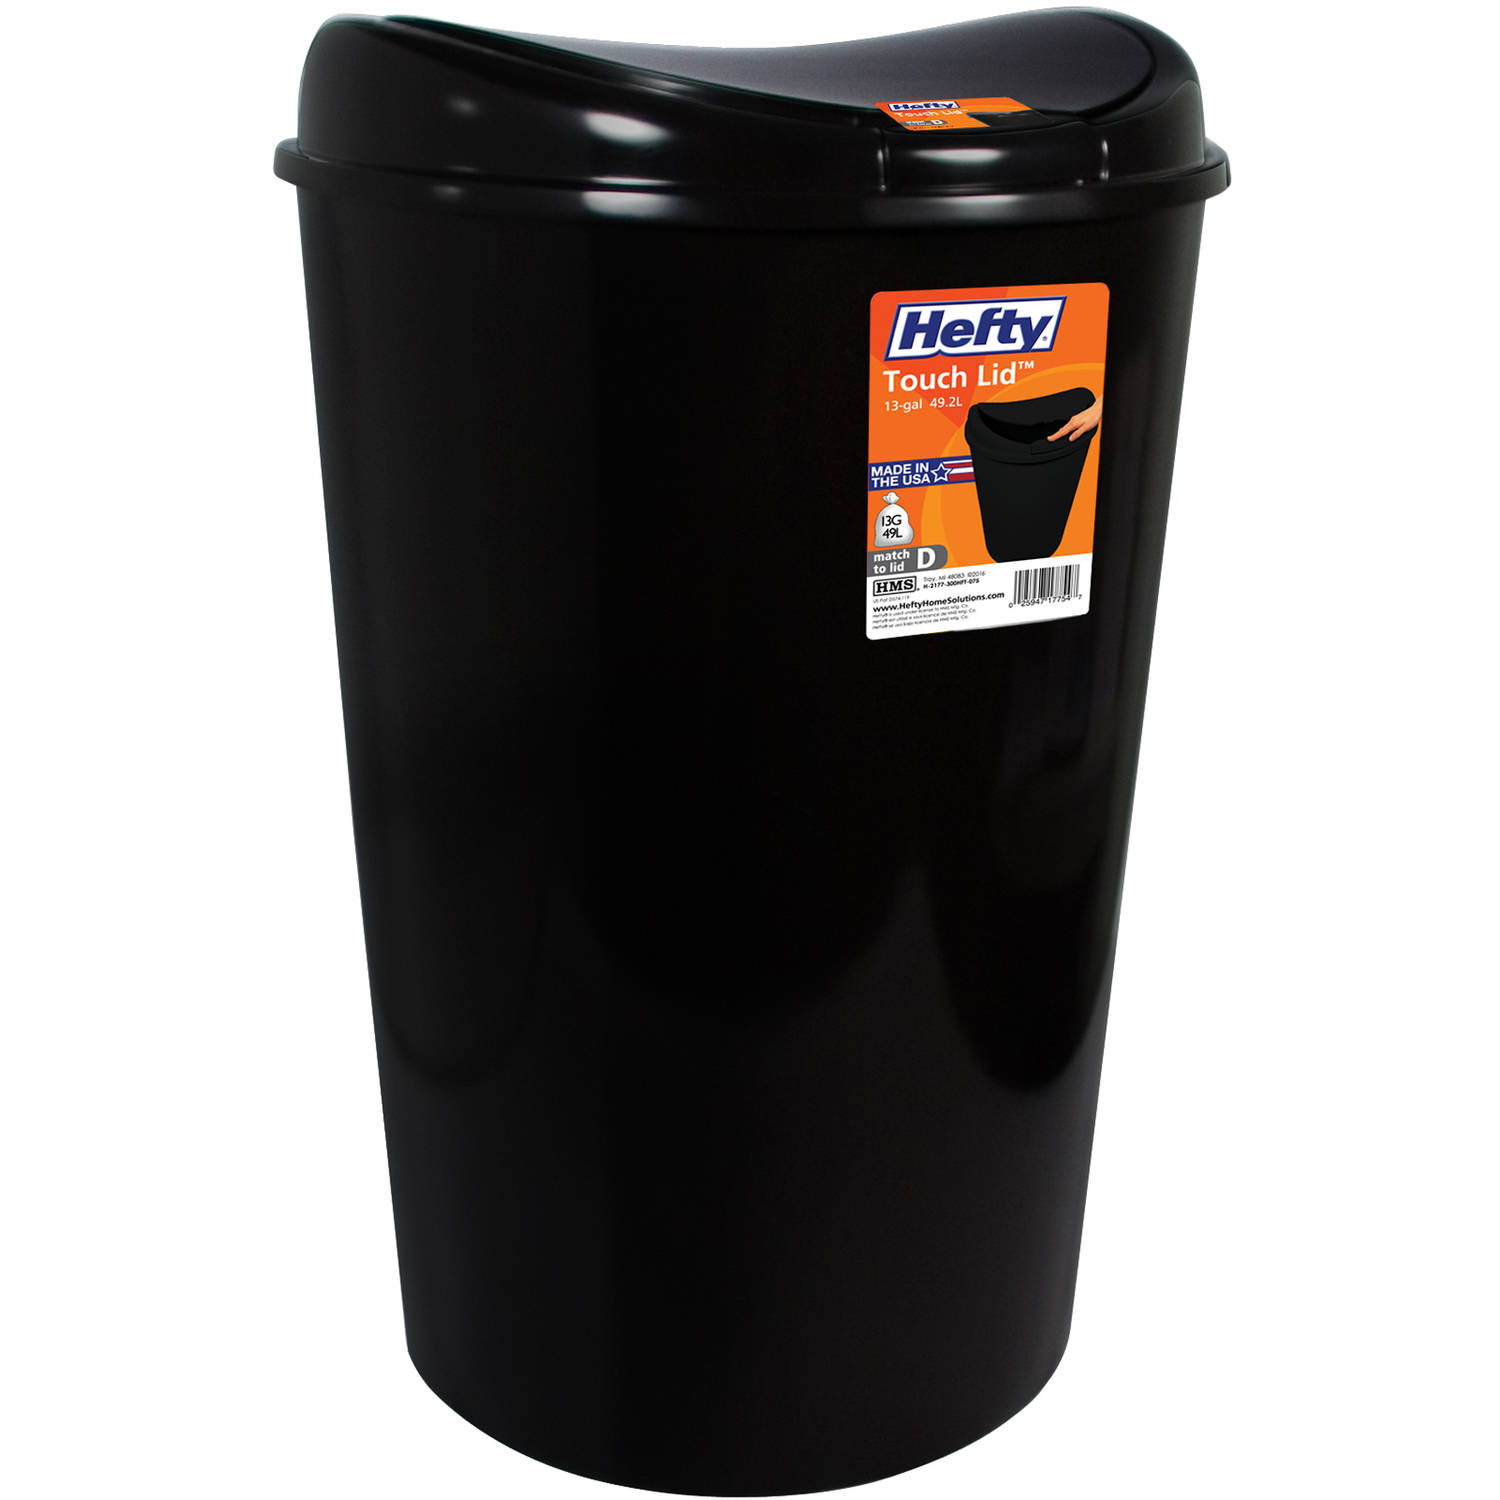 Hefty 13.8-Gallon Semi-Round Touch Lid Trash Can, Black